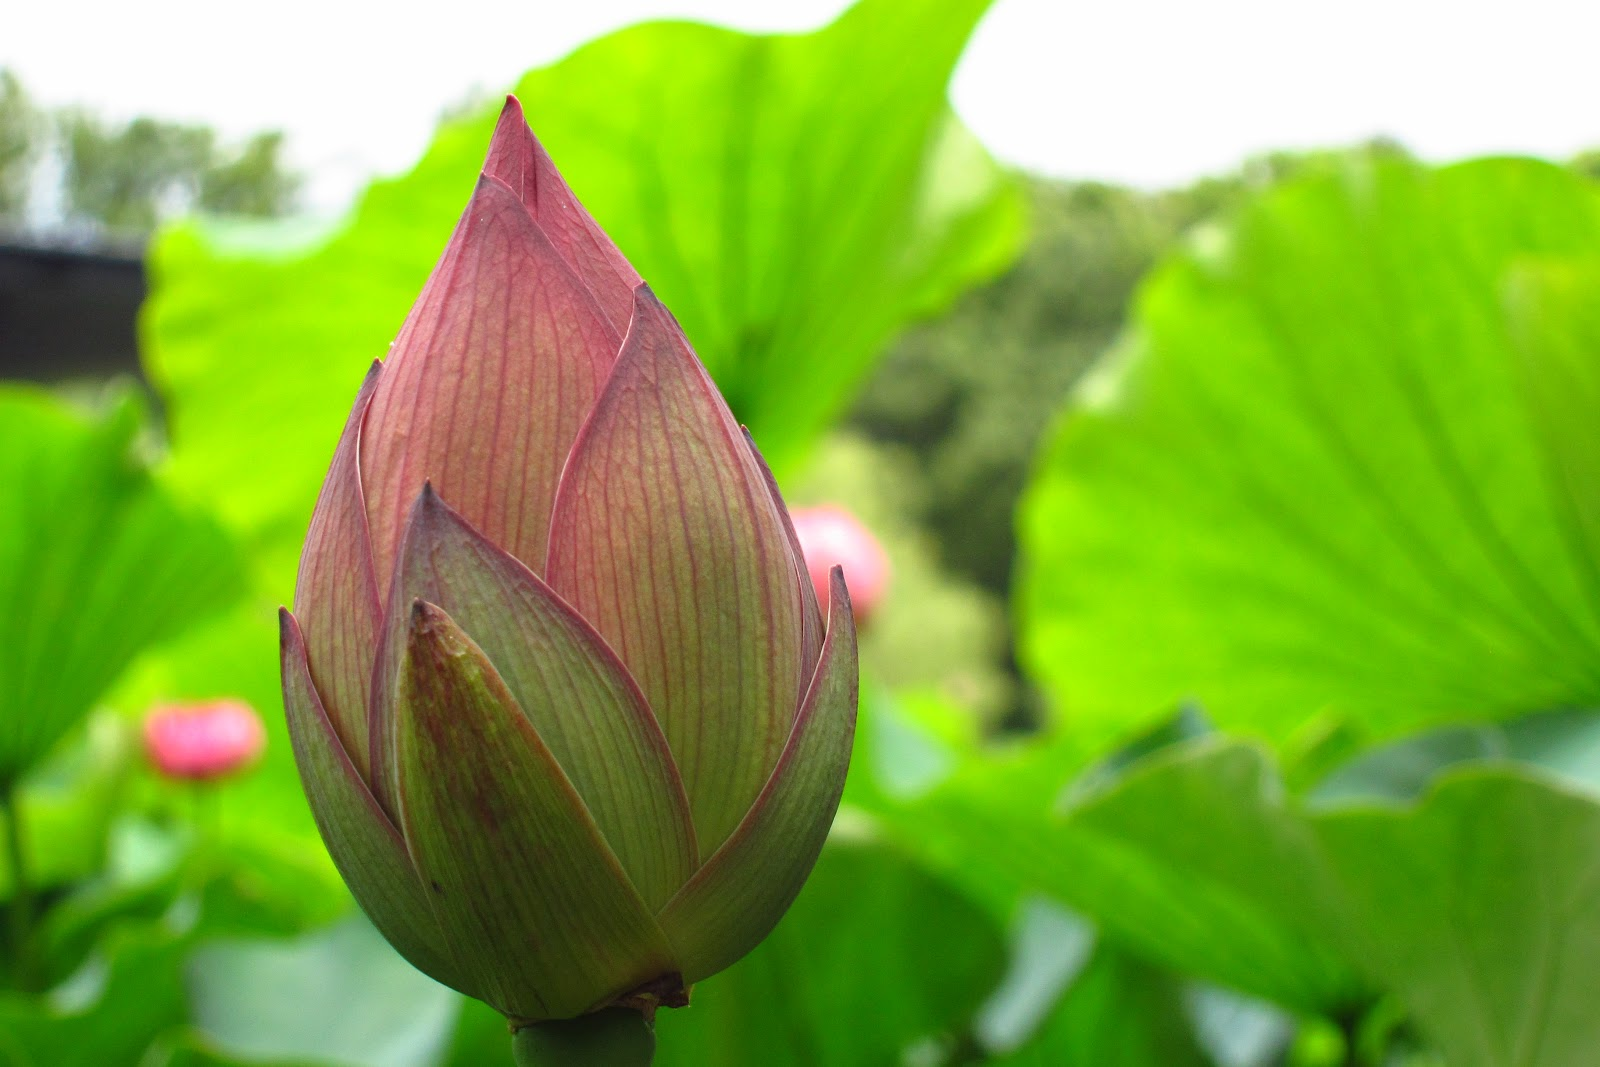 Round of the seasons in japan lotus collection today i learned a small but interesting information about lotus flower that is izmirmasajfo